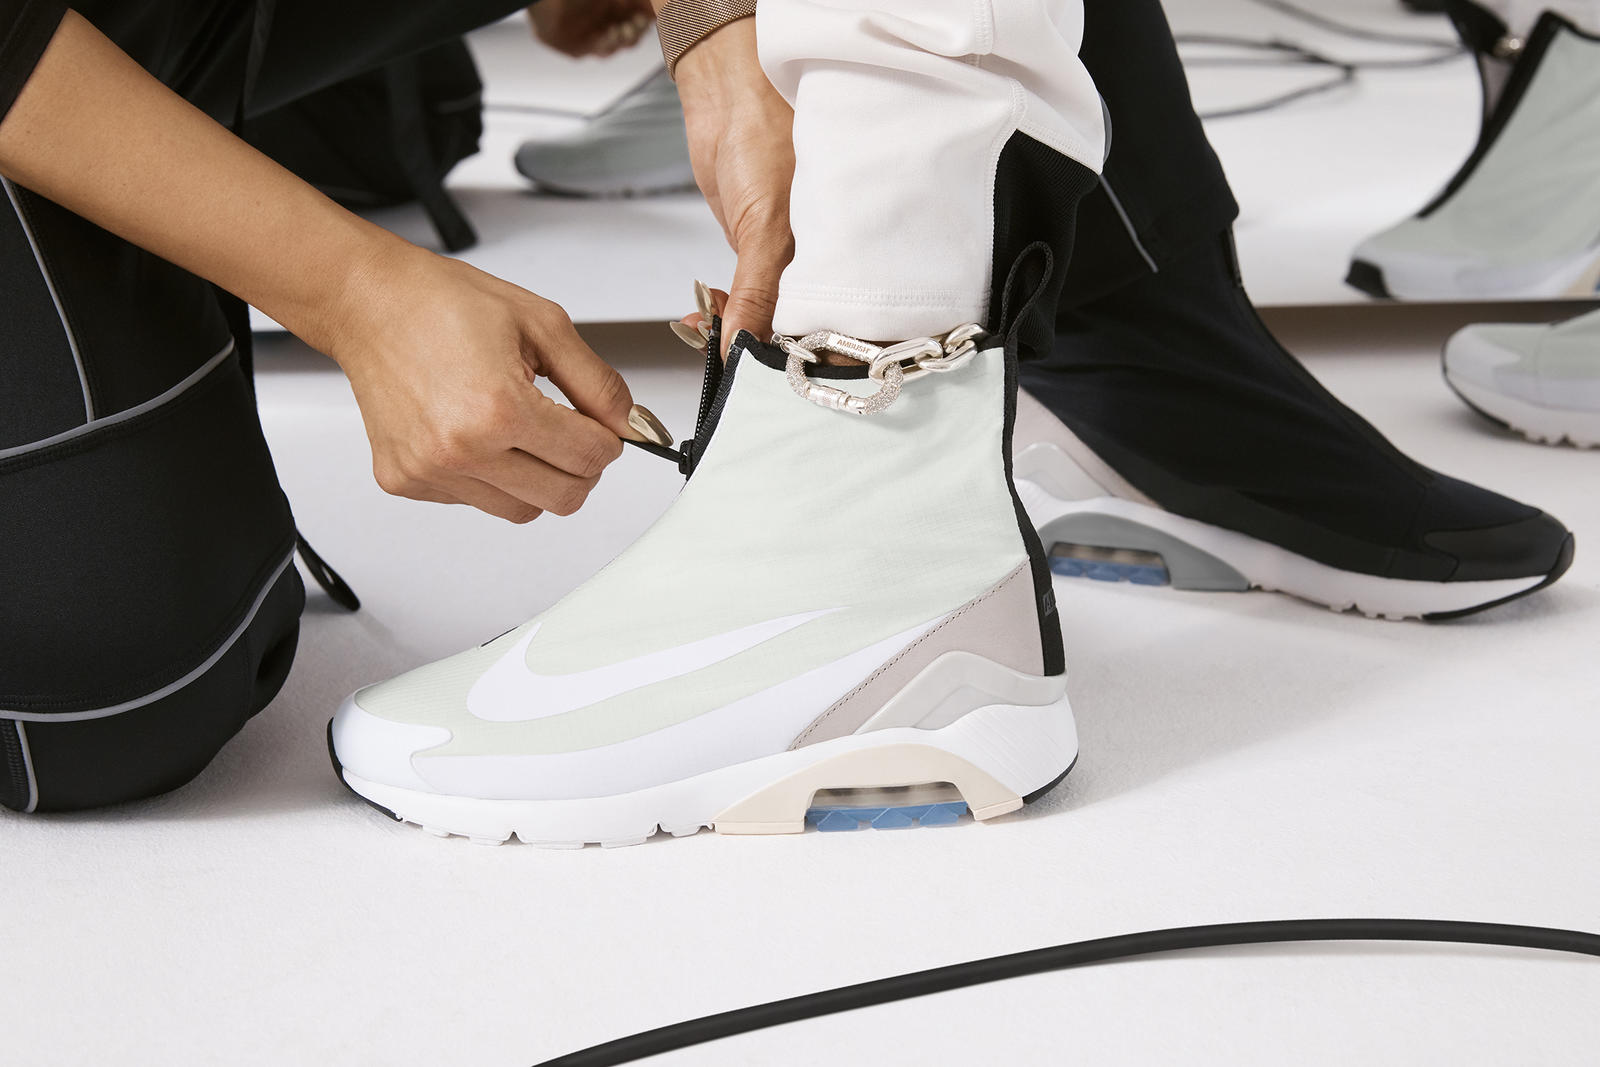 brand new fc275 7c631 The Nike x AMBUSH® Air Max 180 drops April 26 in Japan and April 27  worldwide at AMBUSH® WORKSHOP, AMBUSH® WEBSHOP, and at select Nike Lab  retail stores and ...